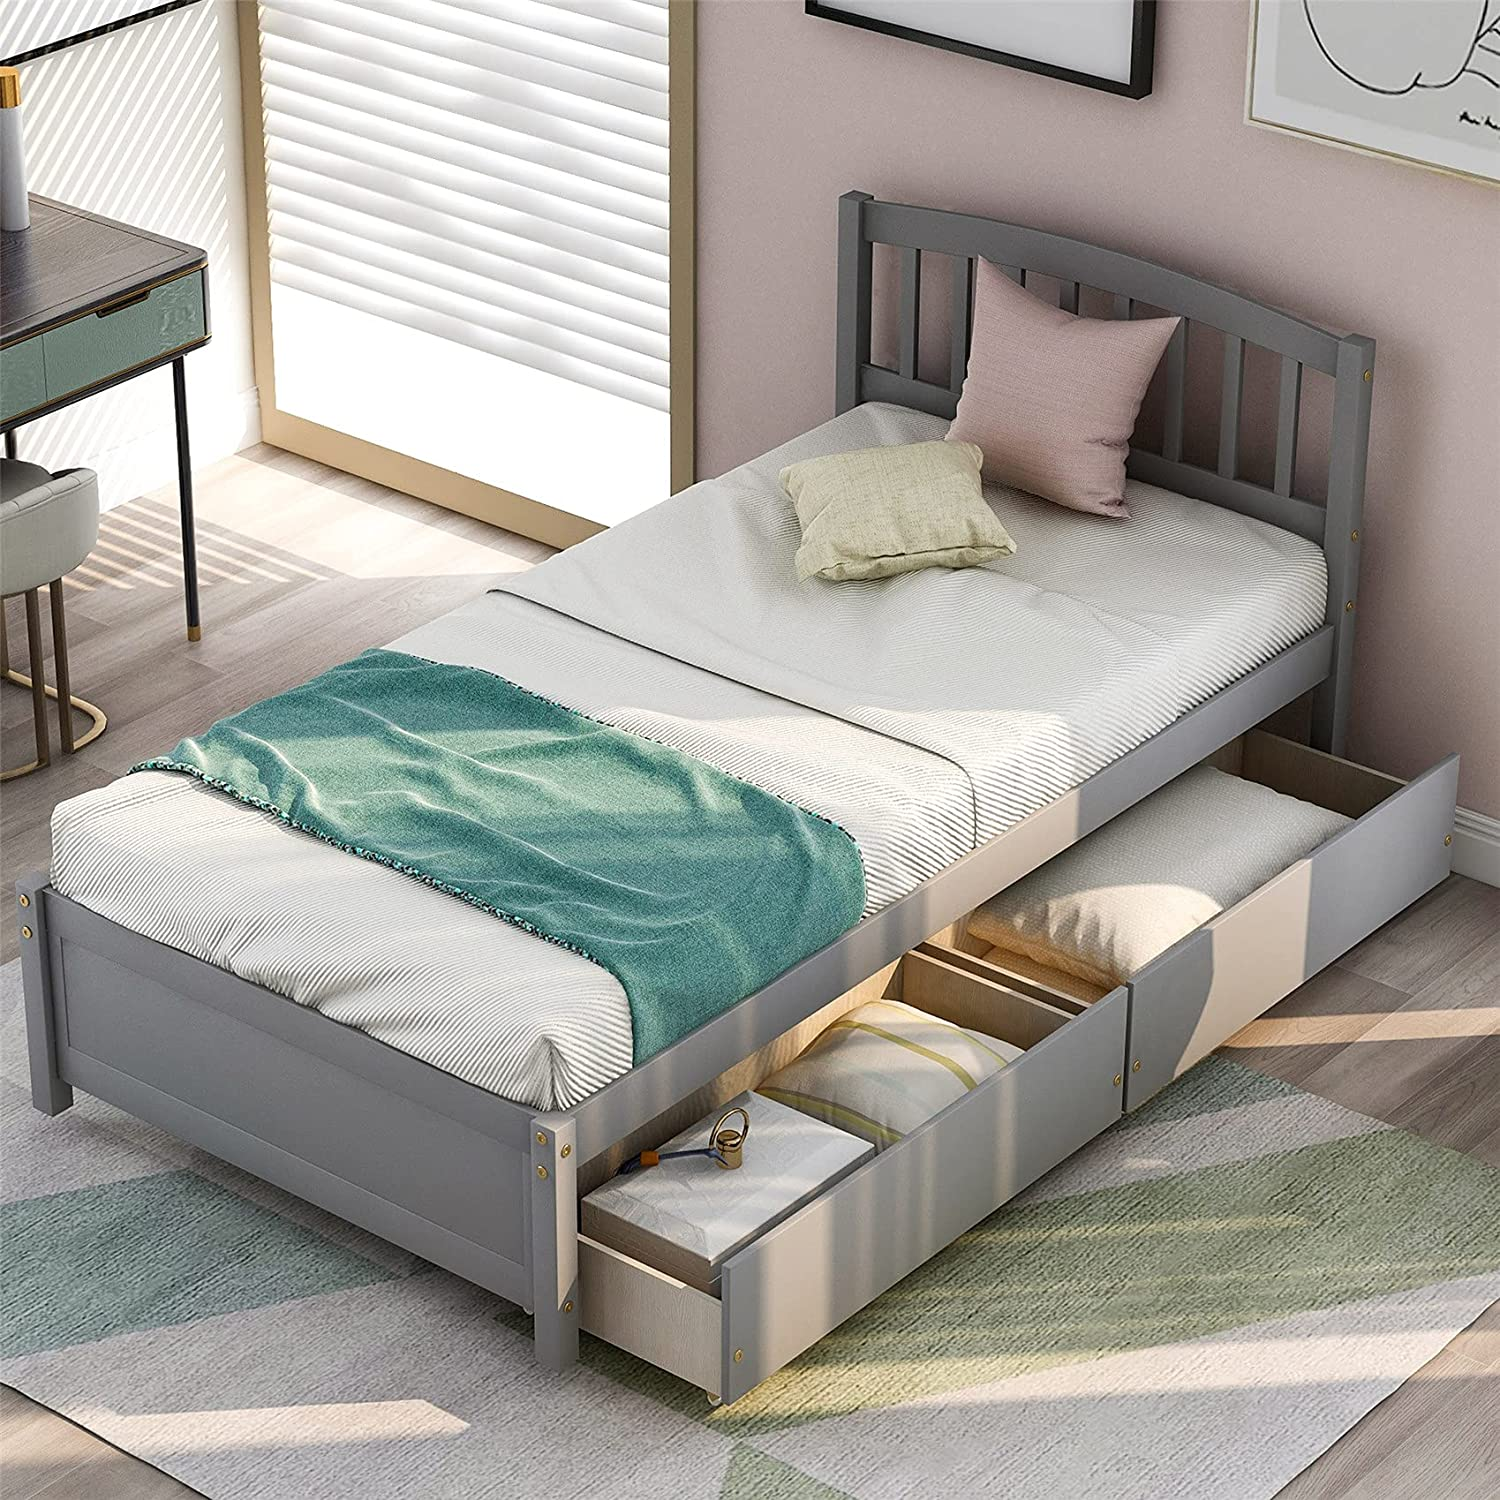 Twin Storage Bed Frame Wood Platform Drawers Regular store and H Two with Max 84% OFF